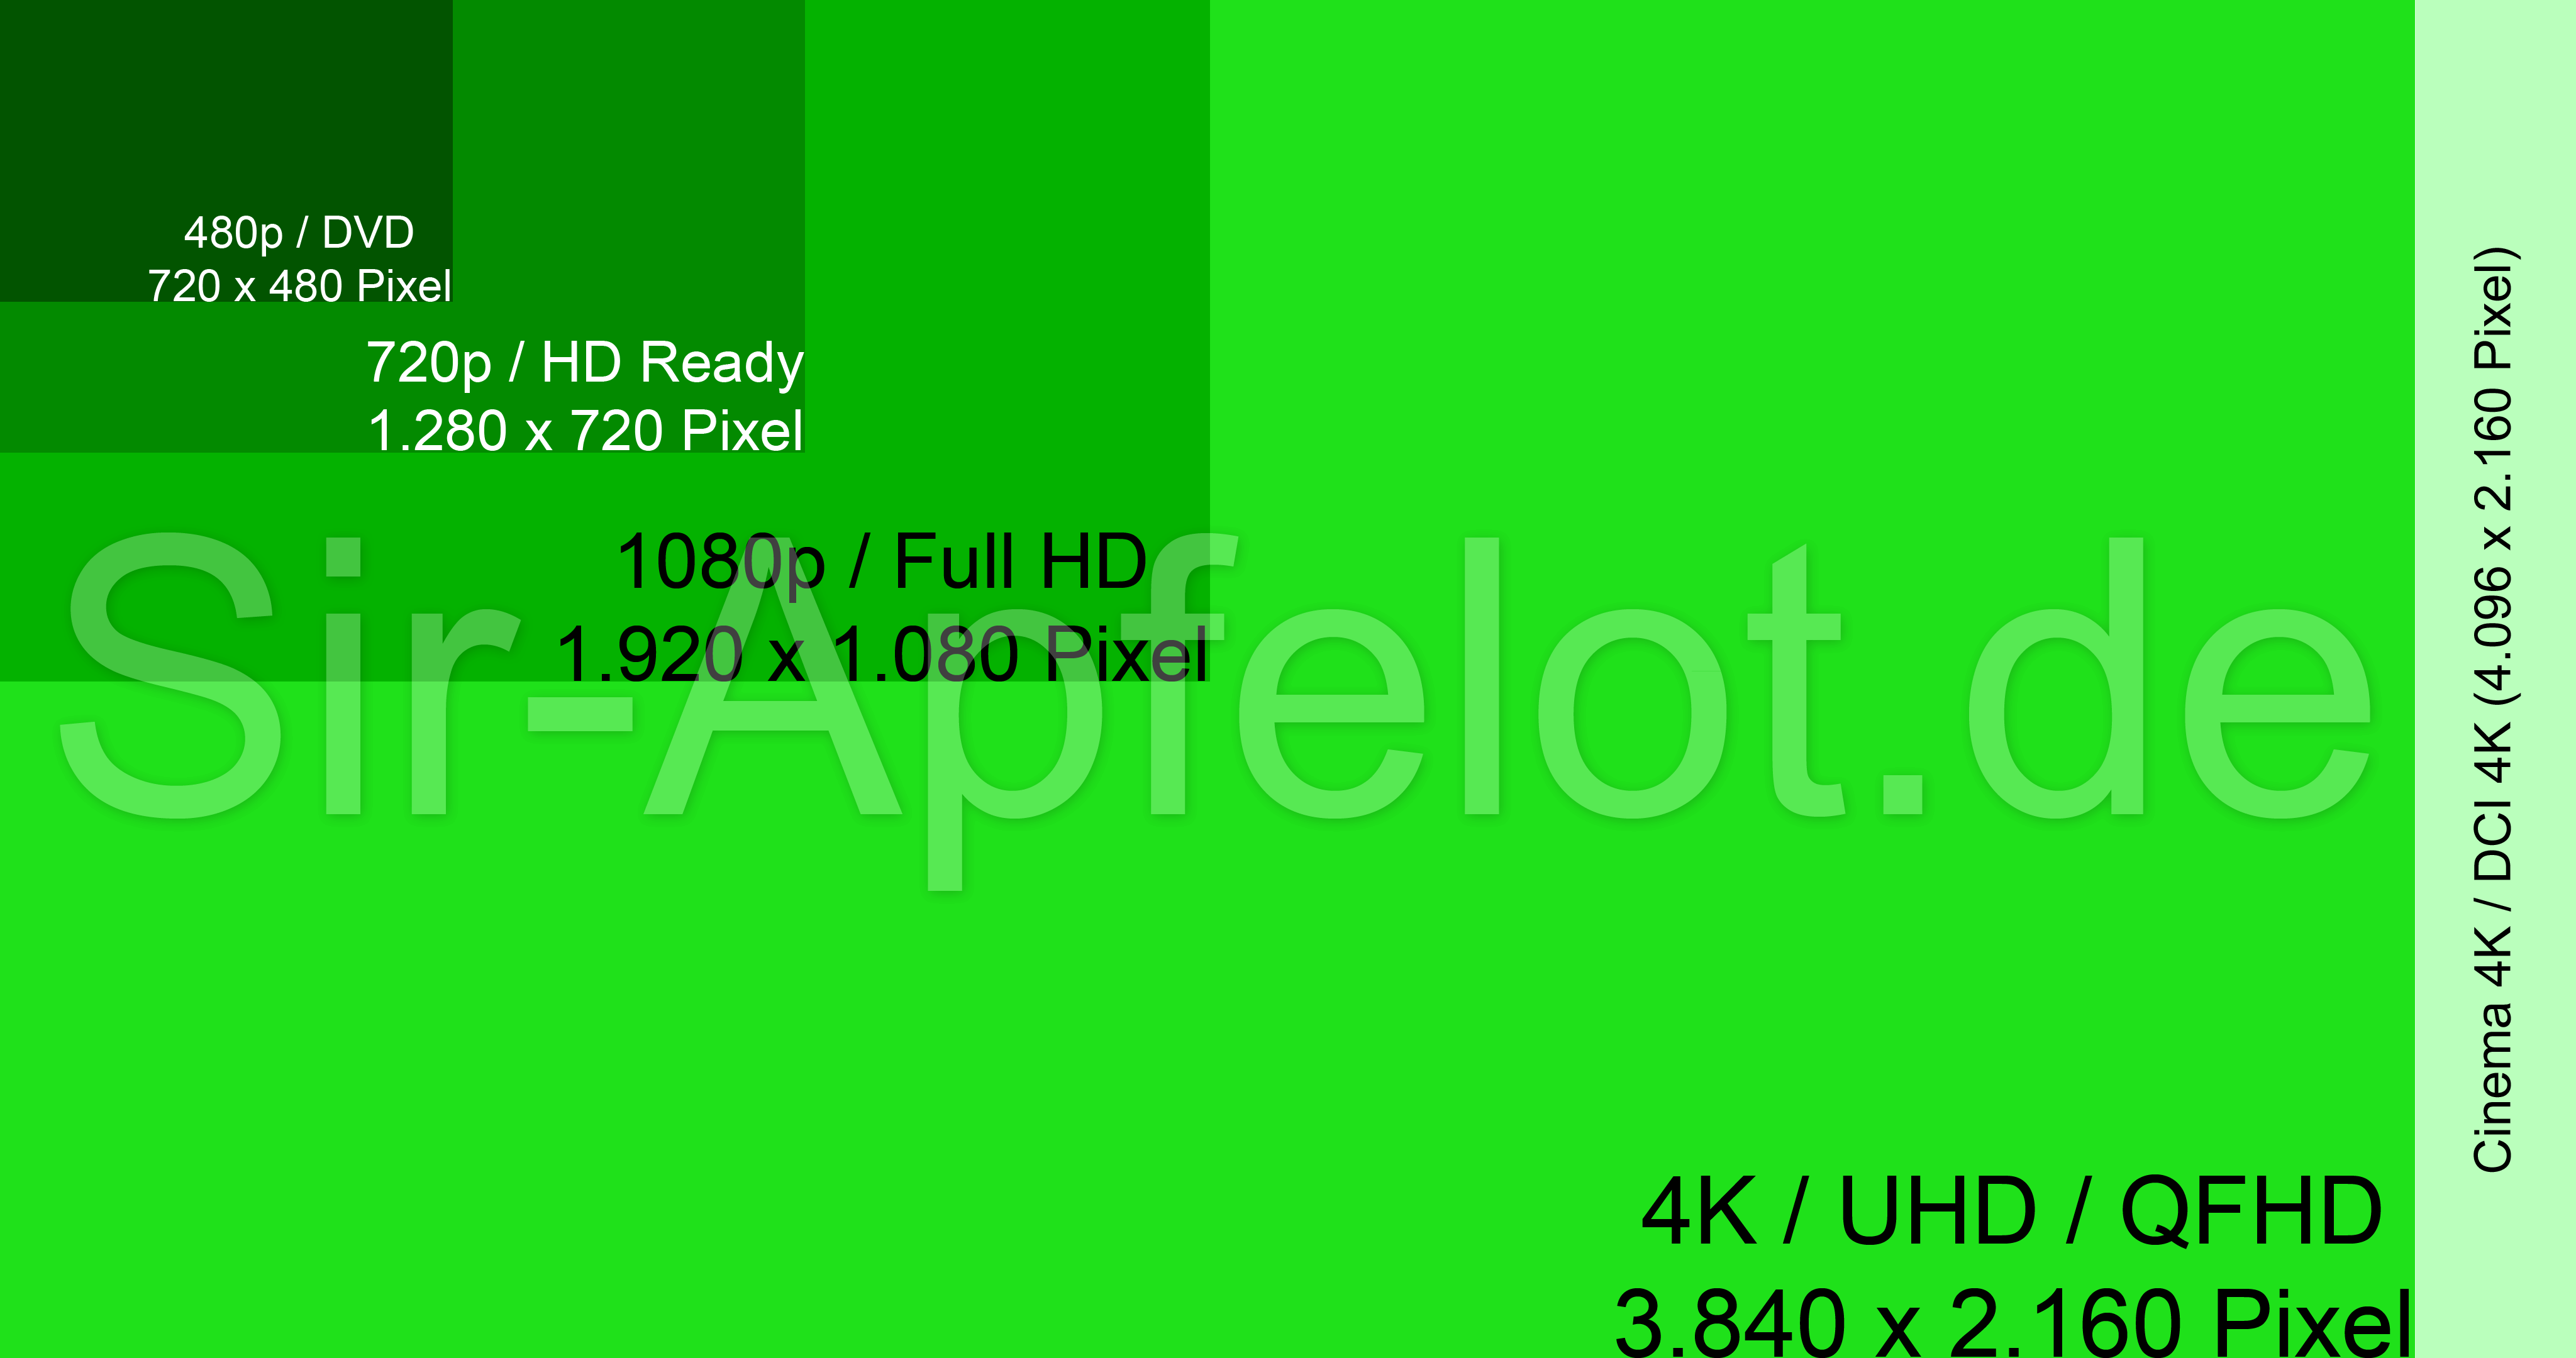 20K, UHD and QFHD how many pixels are they Difference and comparison.